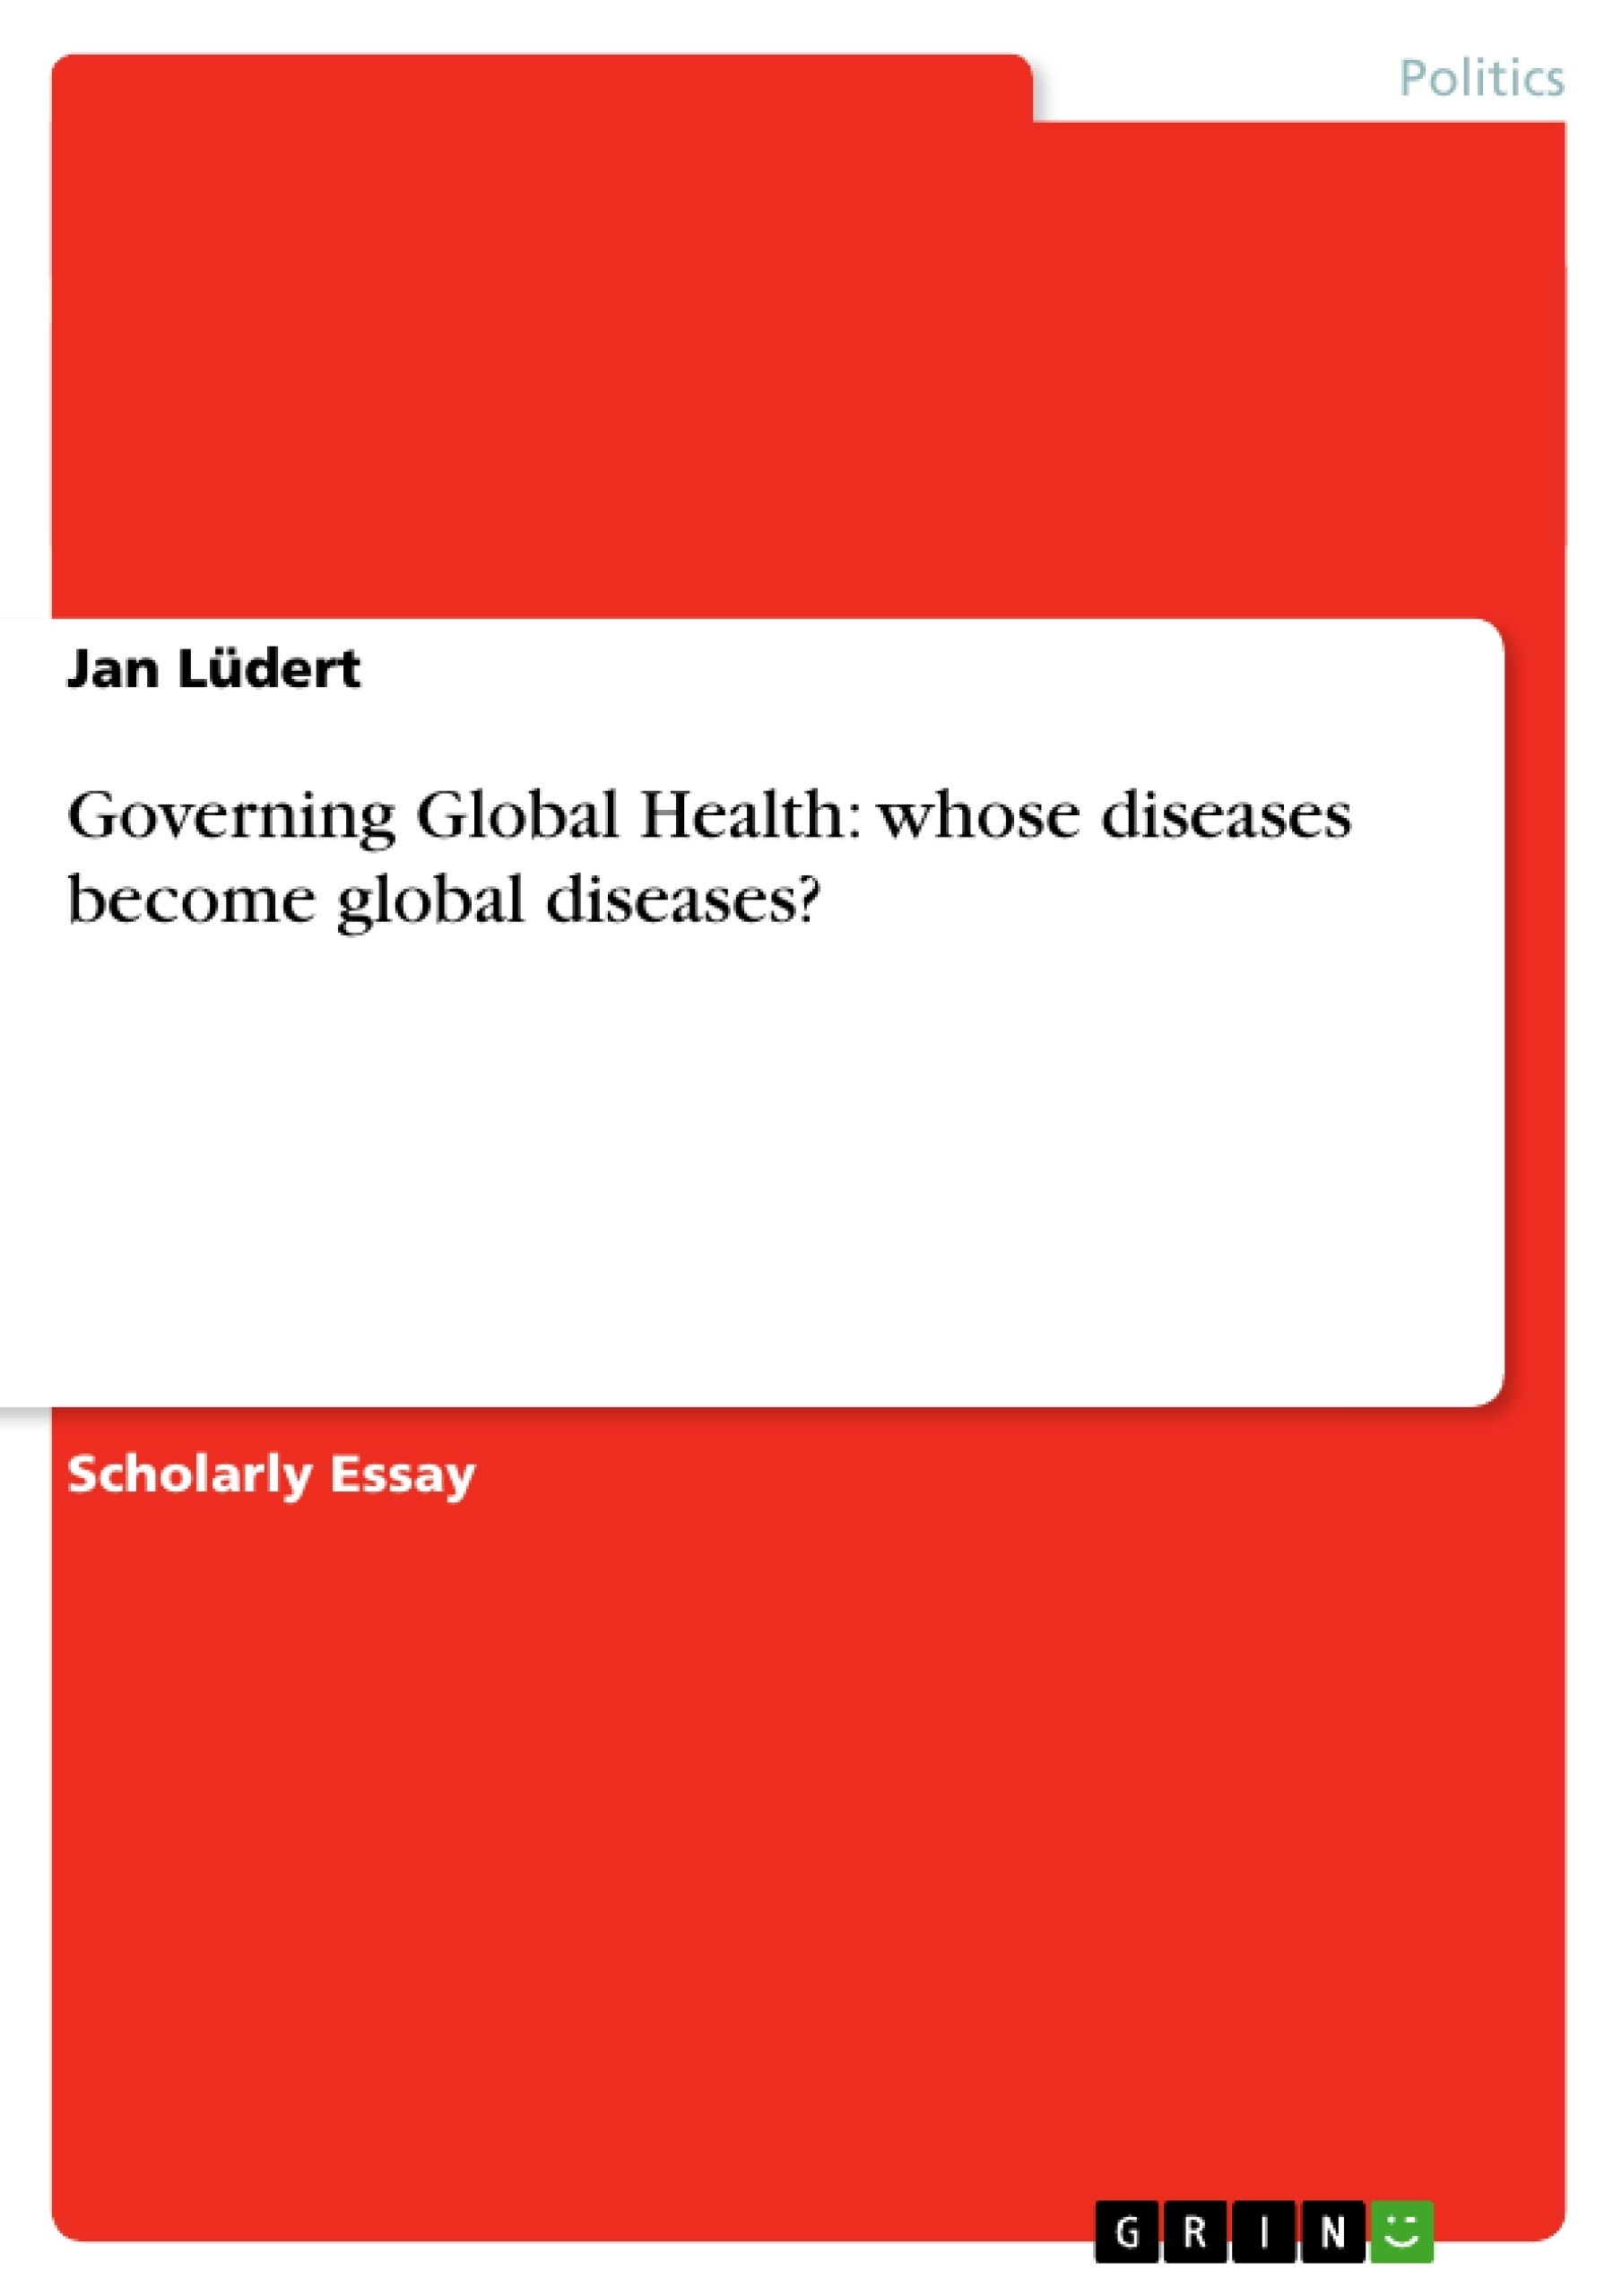 Title: Governing Global Health: whose diseases become global diseases?